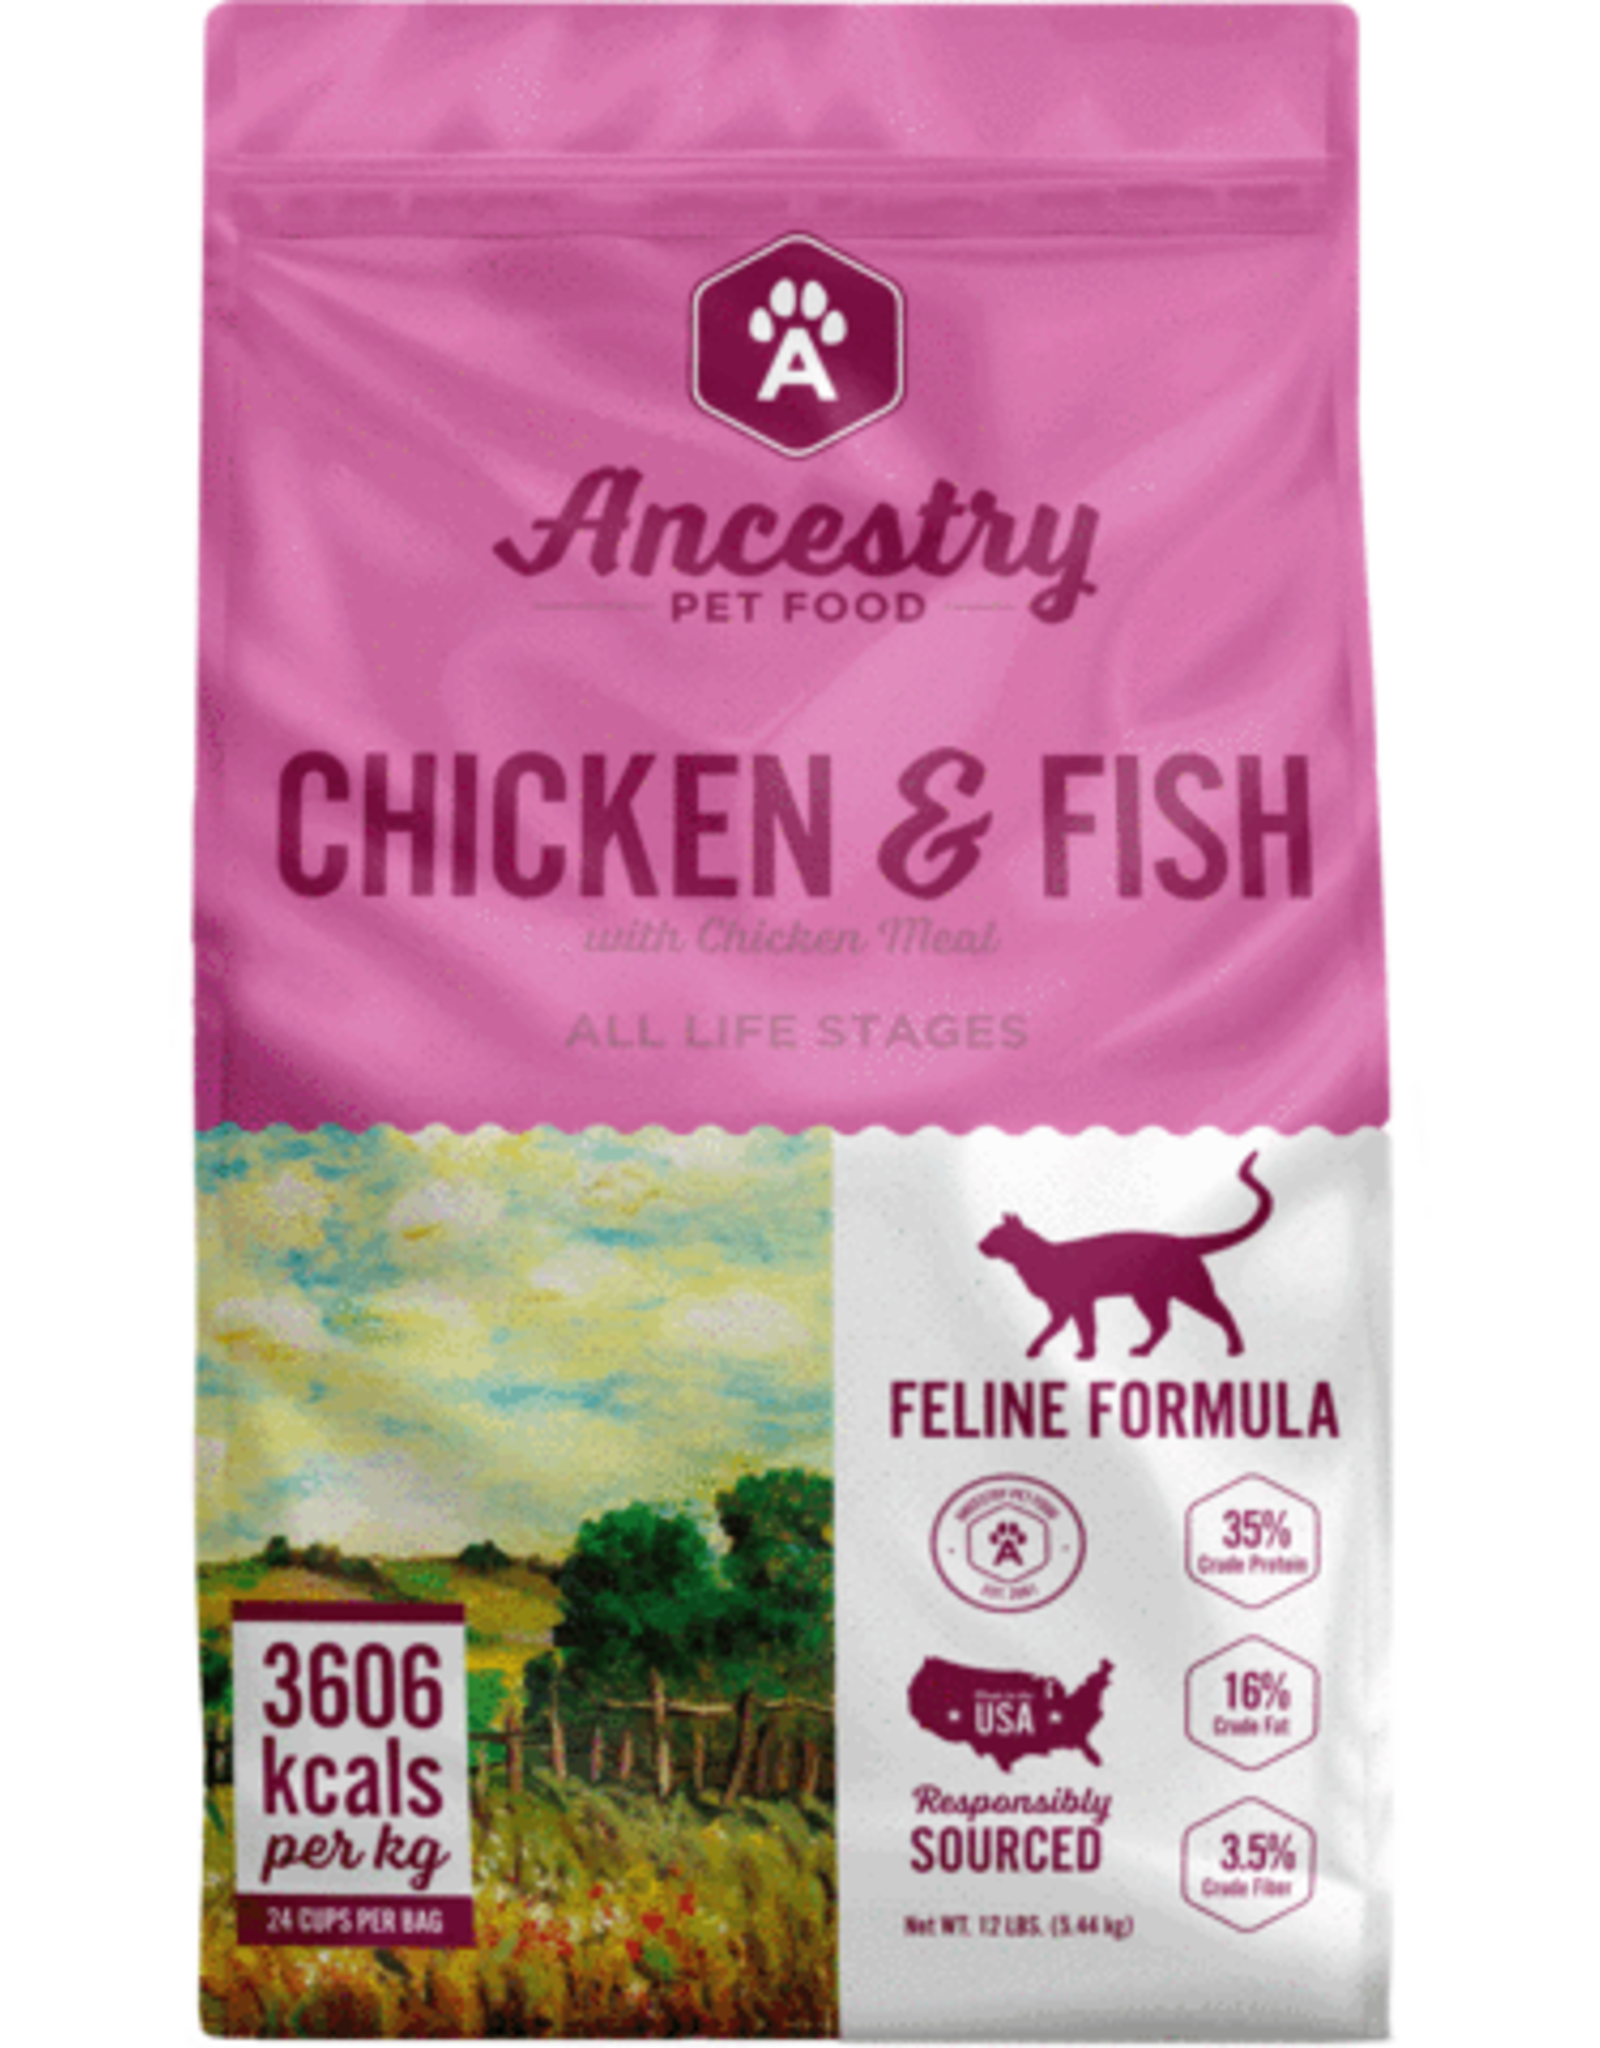 Ancestry Ancestry Dry Cat Food Chicken & Fish with Chicken Meal 4lb bag Grain Free